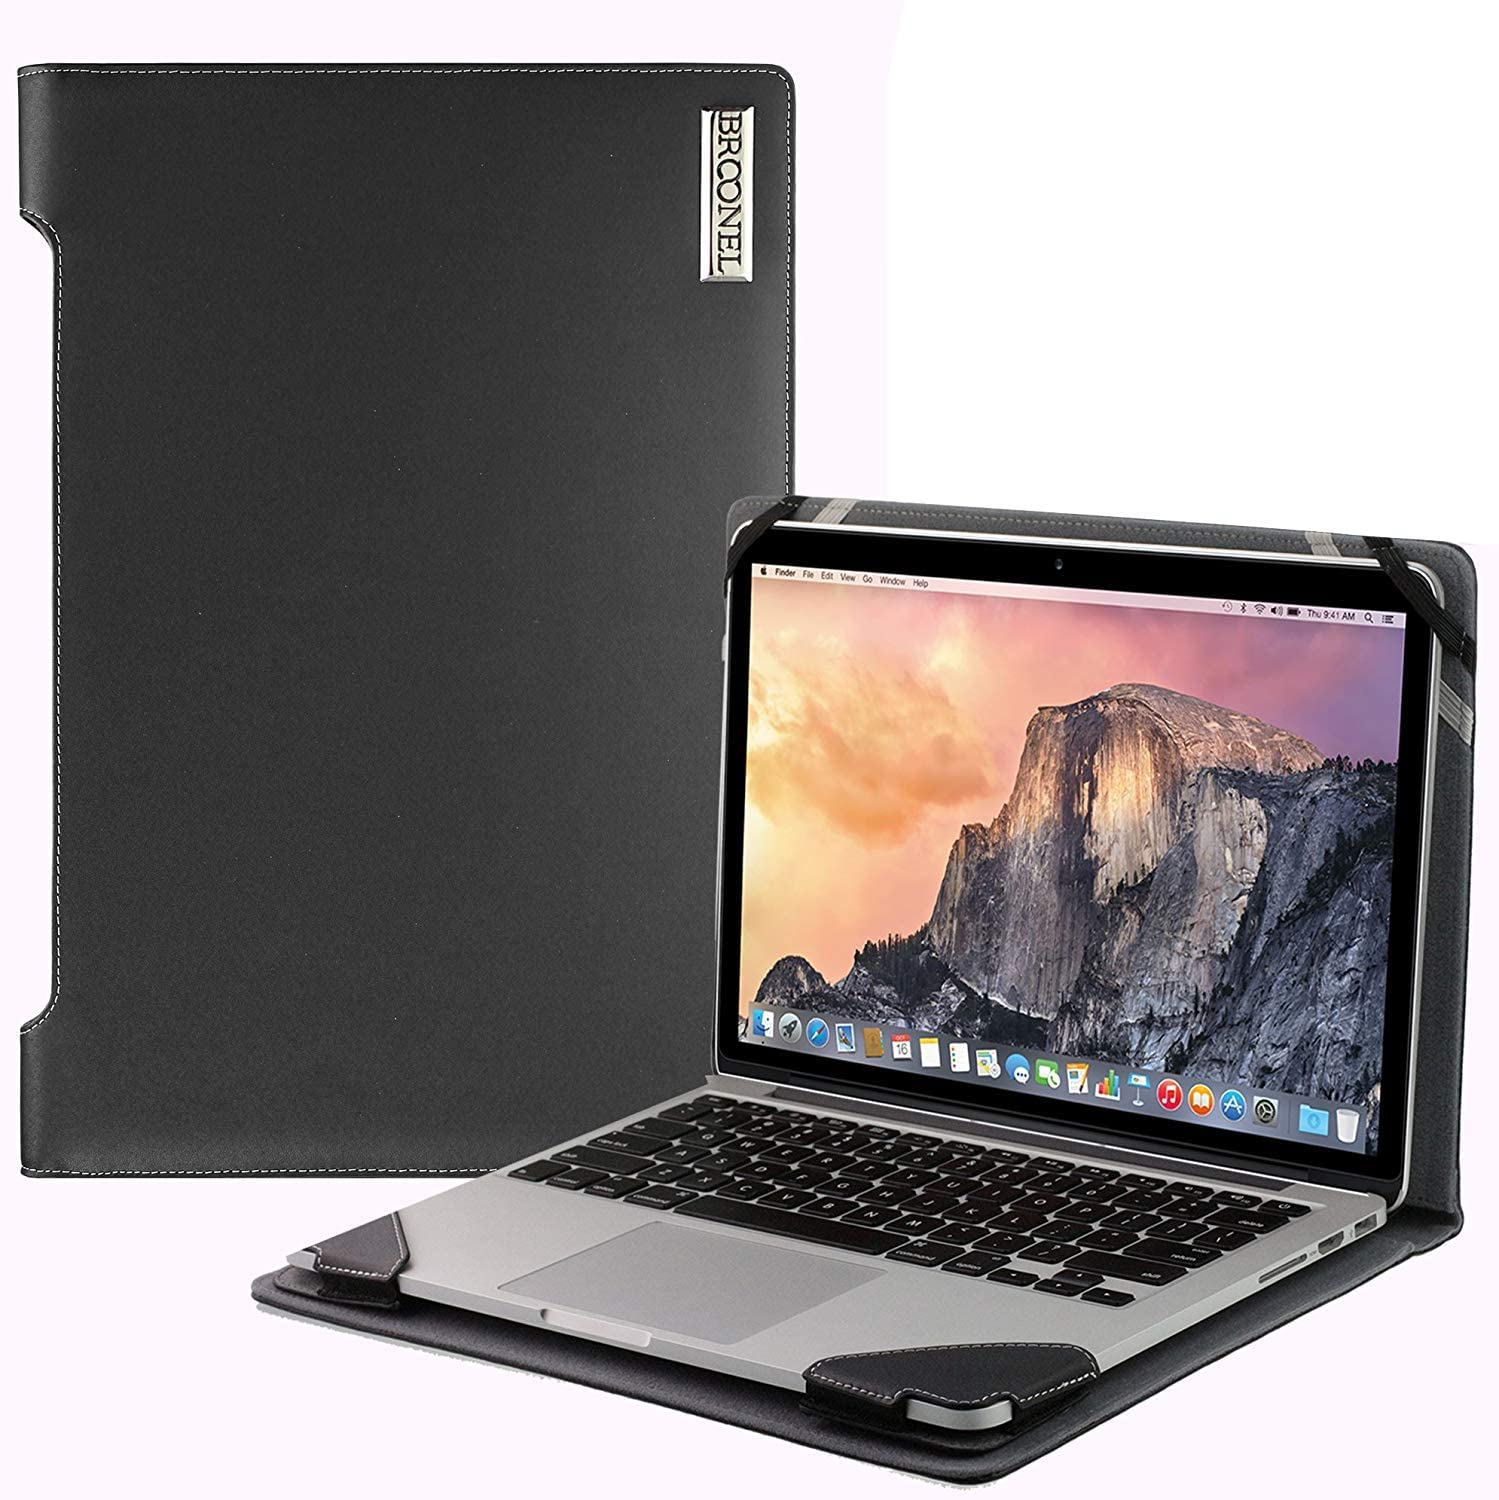 Broonel - Profile Series - Black Leather Laptop Case Compatible with The Jumper EZbook X3-13.3